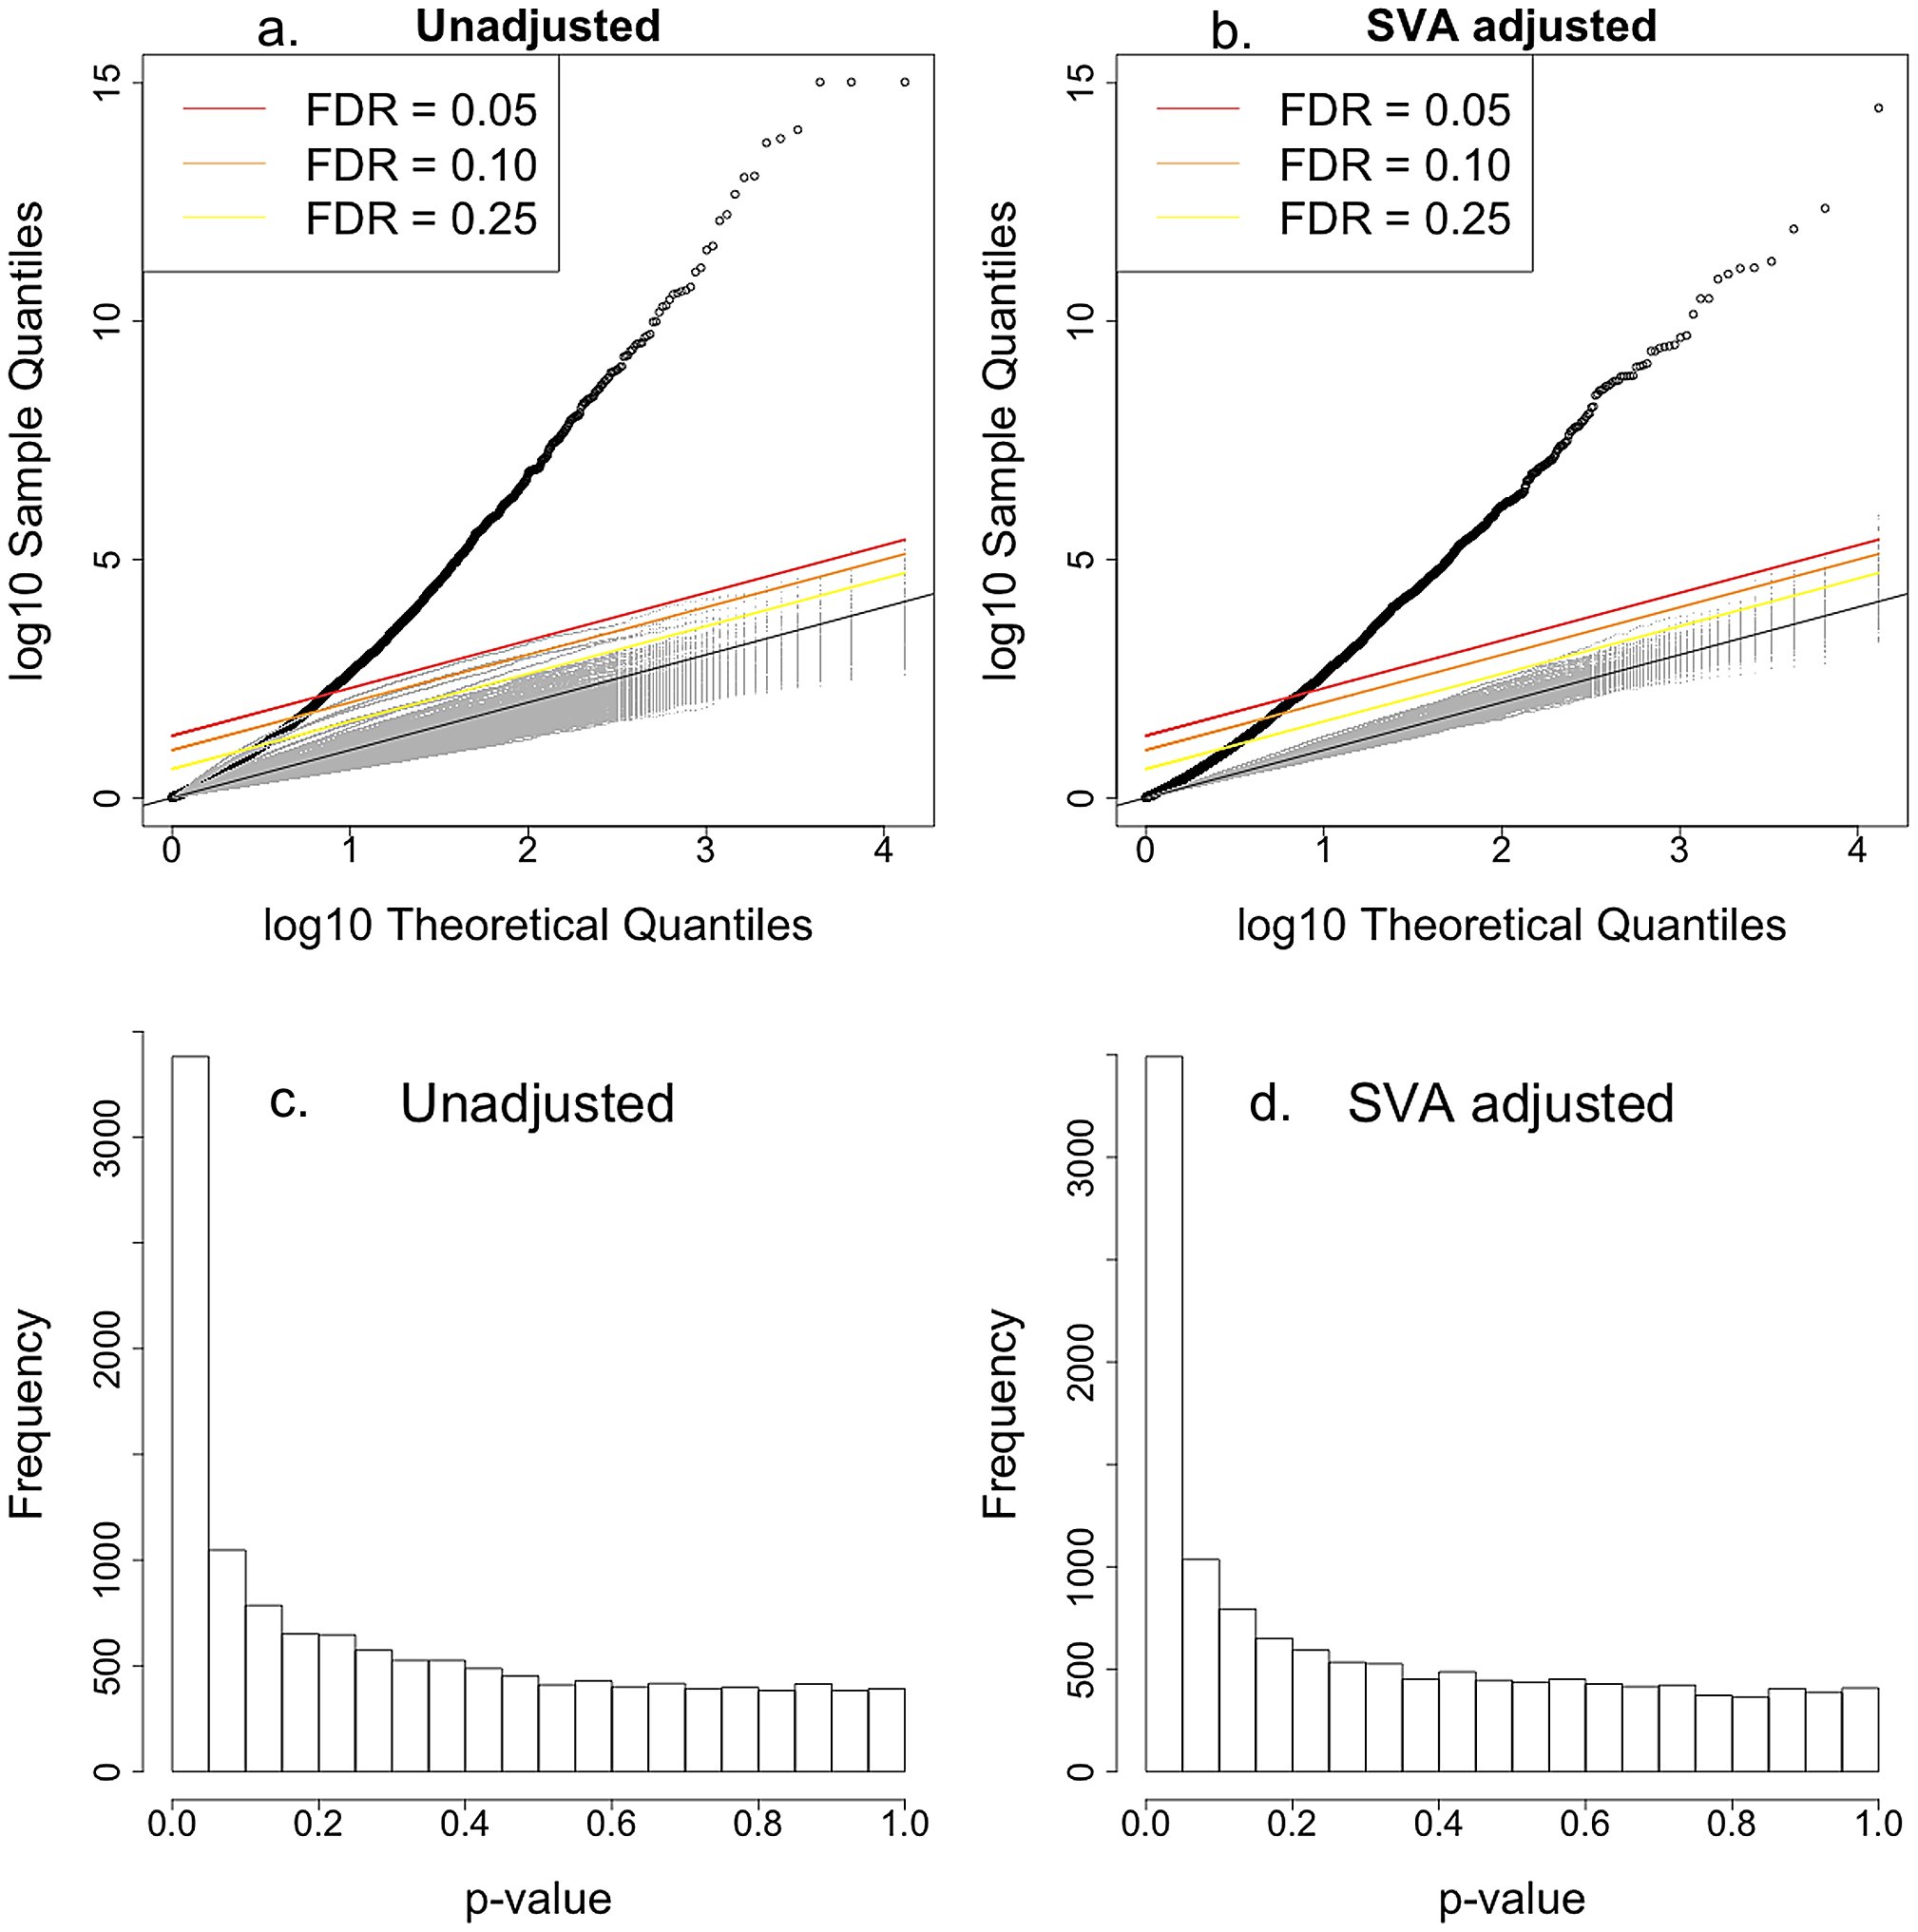 Intrinsic growth versus gene expression with Surrogate Variable Analysis adjustment.